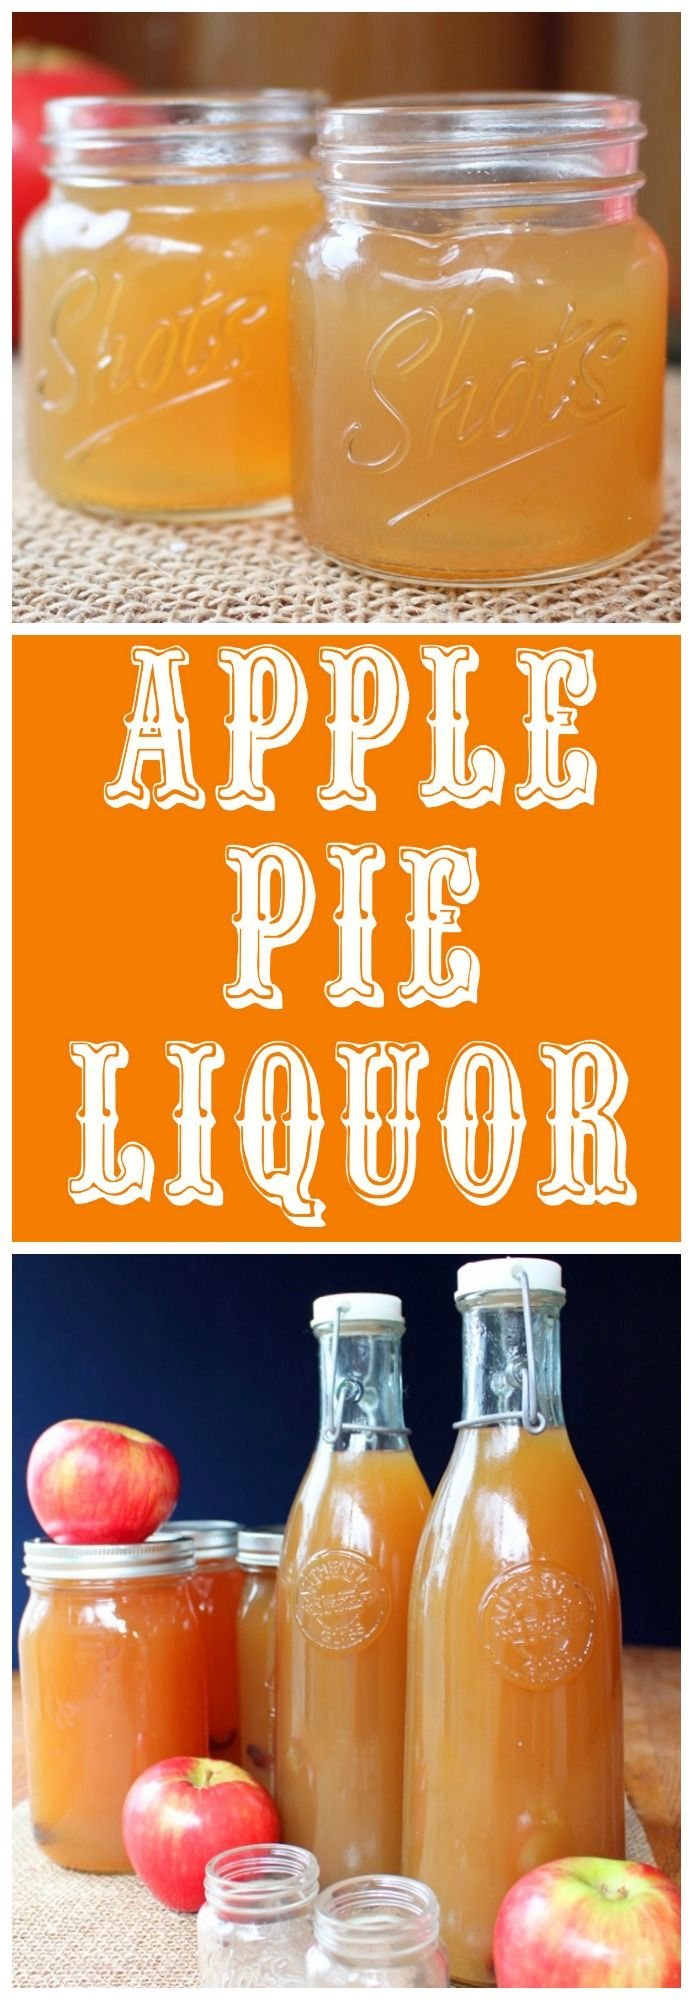 This is one of my favorite Fall traditions. Mountain Man introduced me to Apple Pie Liquor the first year we lived together. It's the only liquor I know of that is mild enough for me to take a celebratory shot from time to time. I'm a total wuss when it… Continue reading